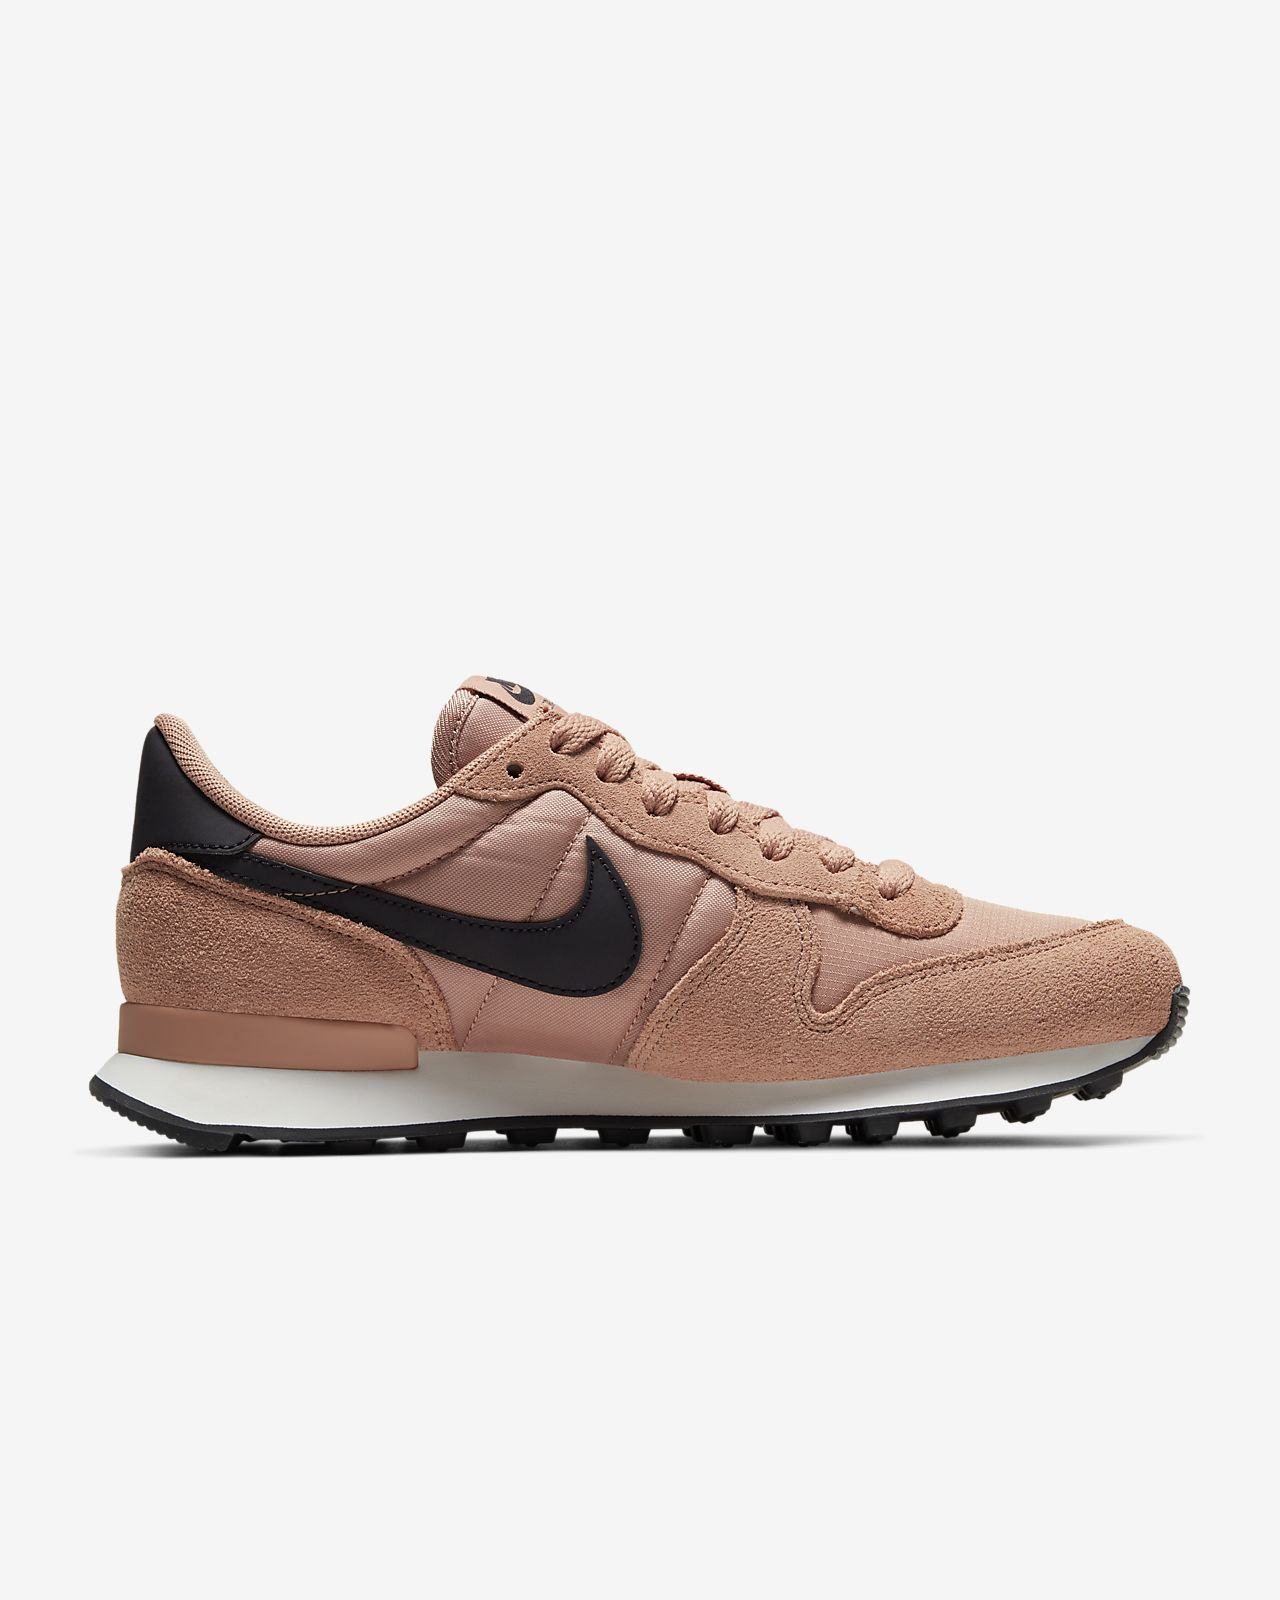 huge discount d0be9 60877 Low Resolution Sko Nike Internationalist för kvinnor Sko Nike  Internationalist för kvinnor